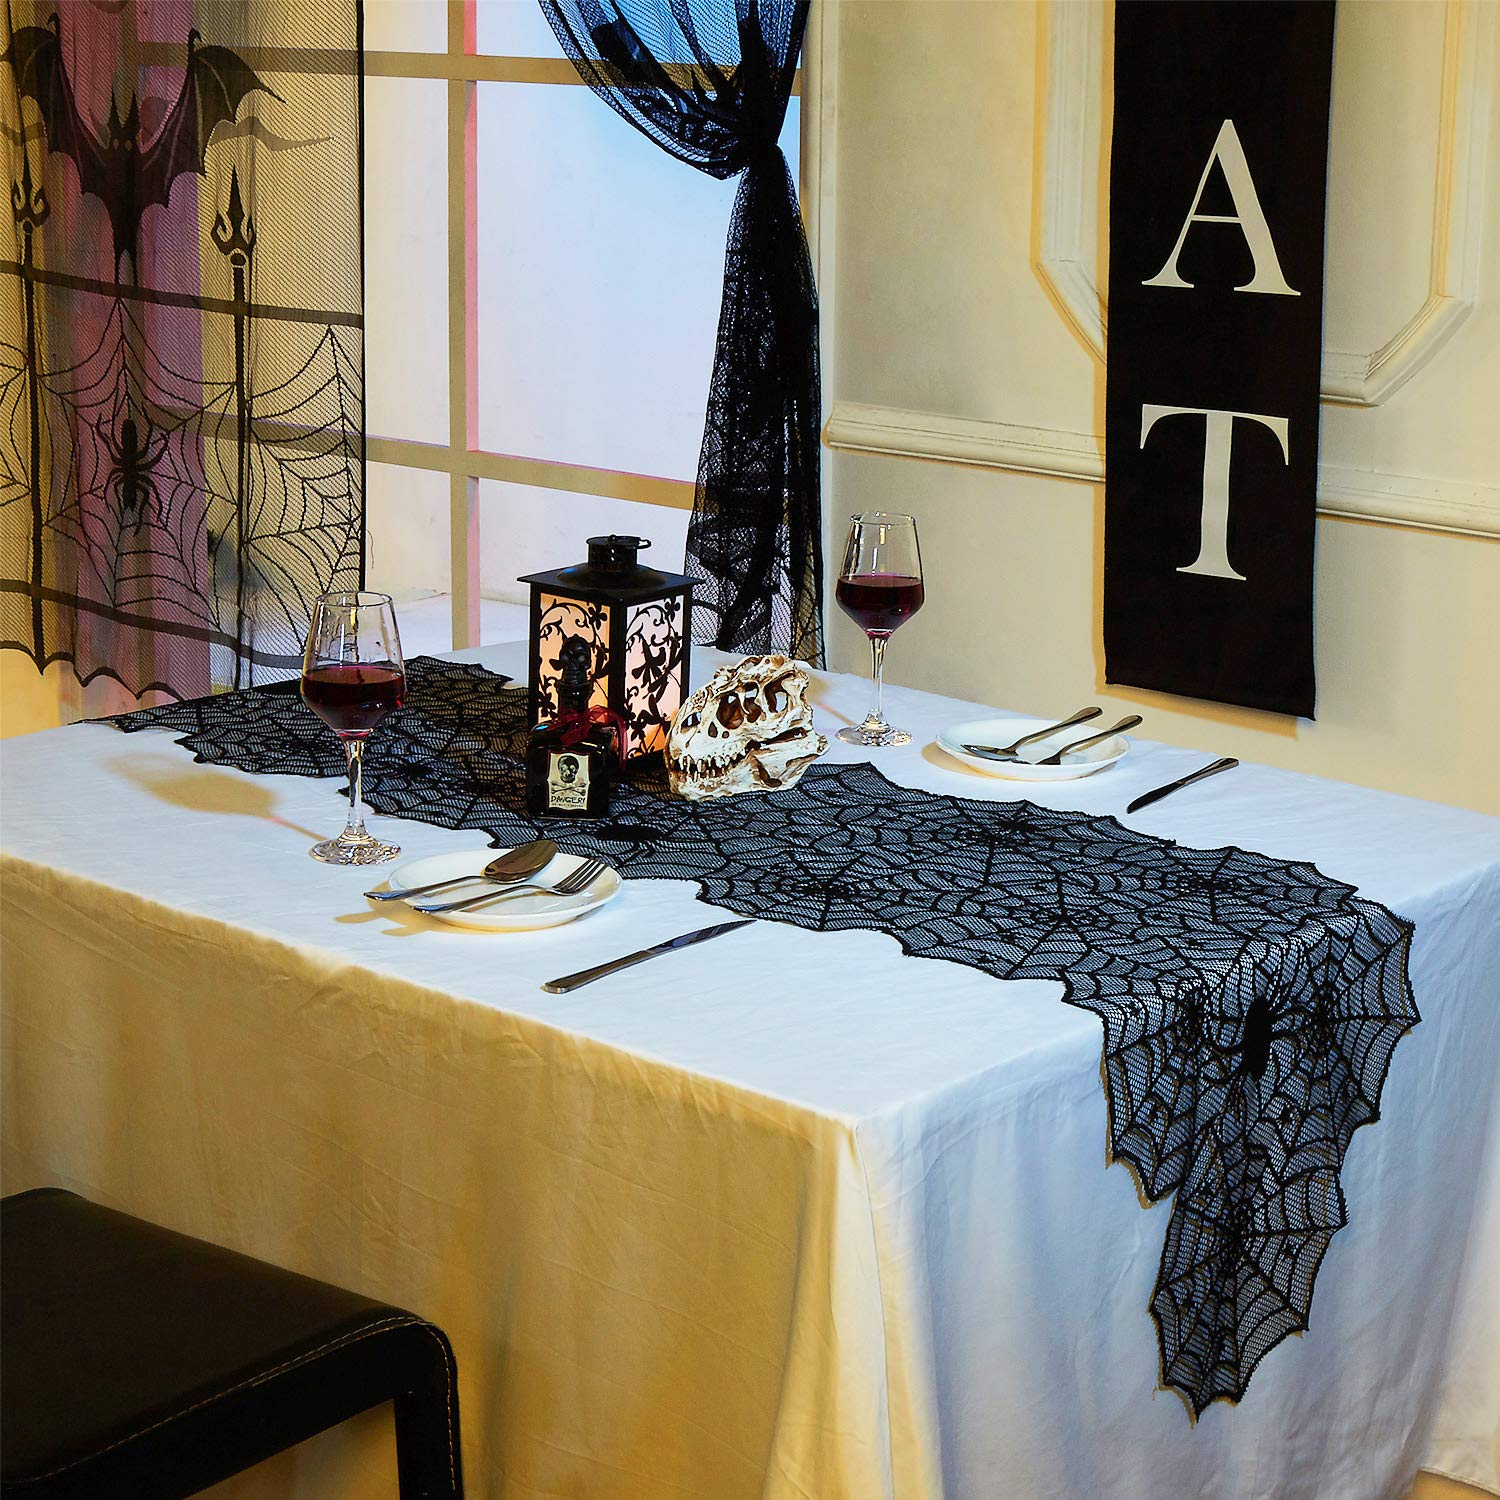 N&T NIETING Halloween Spider Web Black Lace Table Topper 20 x 80 Inches,Black Lace Spider Web Table Runner Halloween Parties, Dinners